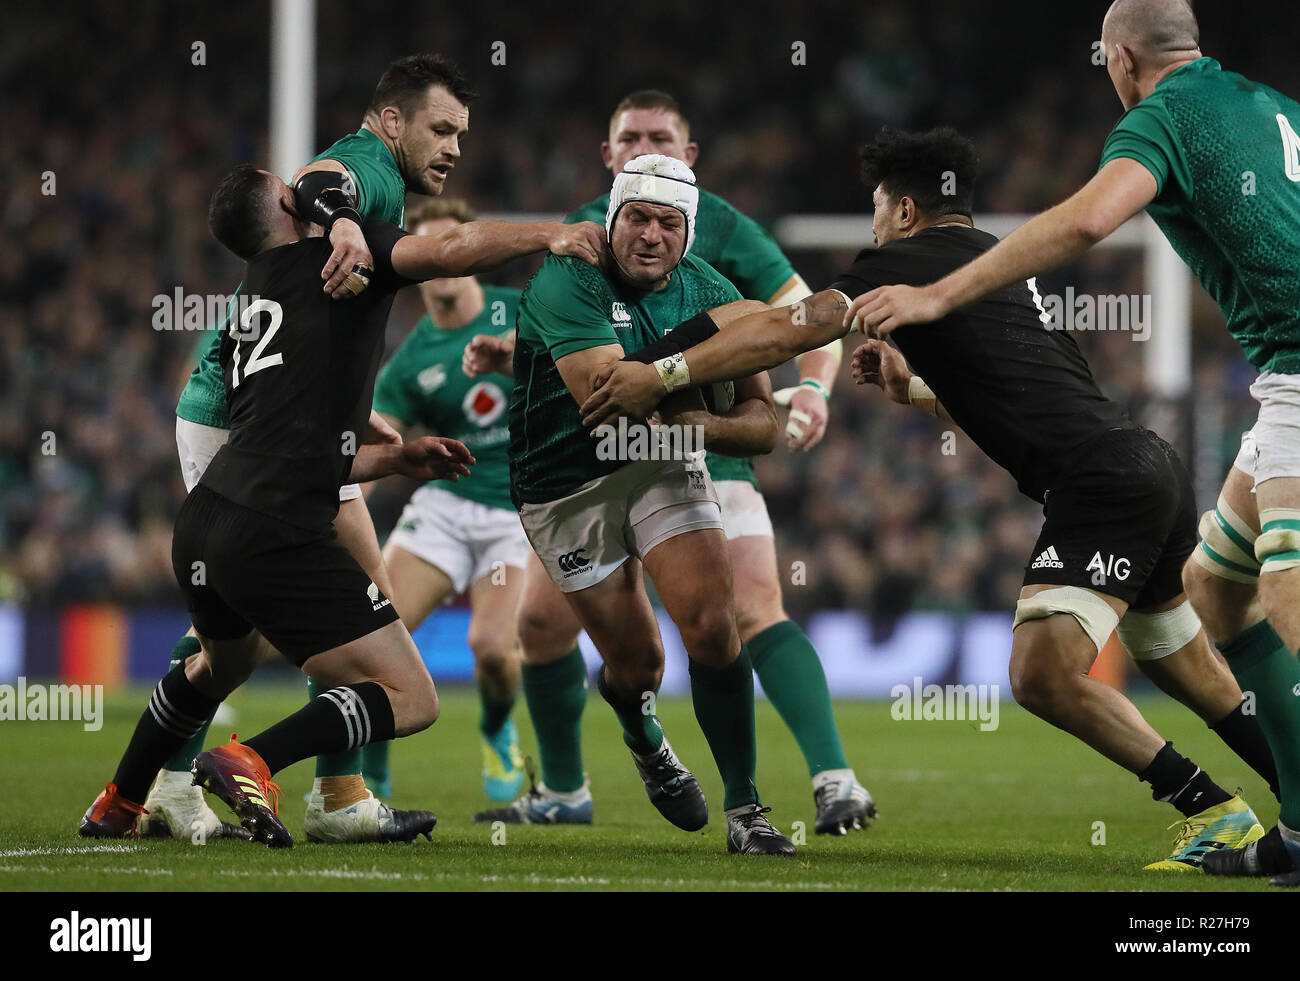 Ireland's Rory Best tackled by New Zealand's Ryan Crotty(left) and Ardie Savea during the Autumn International match at the Aviva Stadium, Dublin. - Stock Image